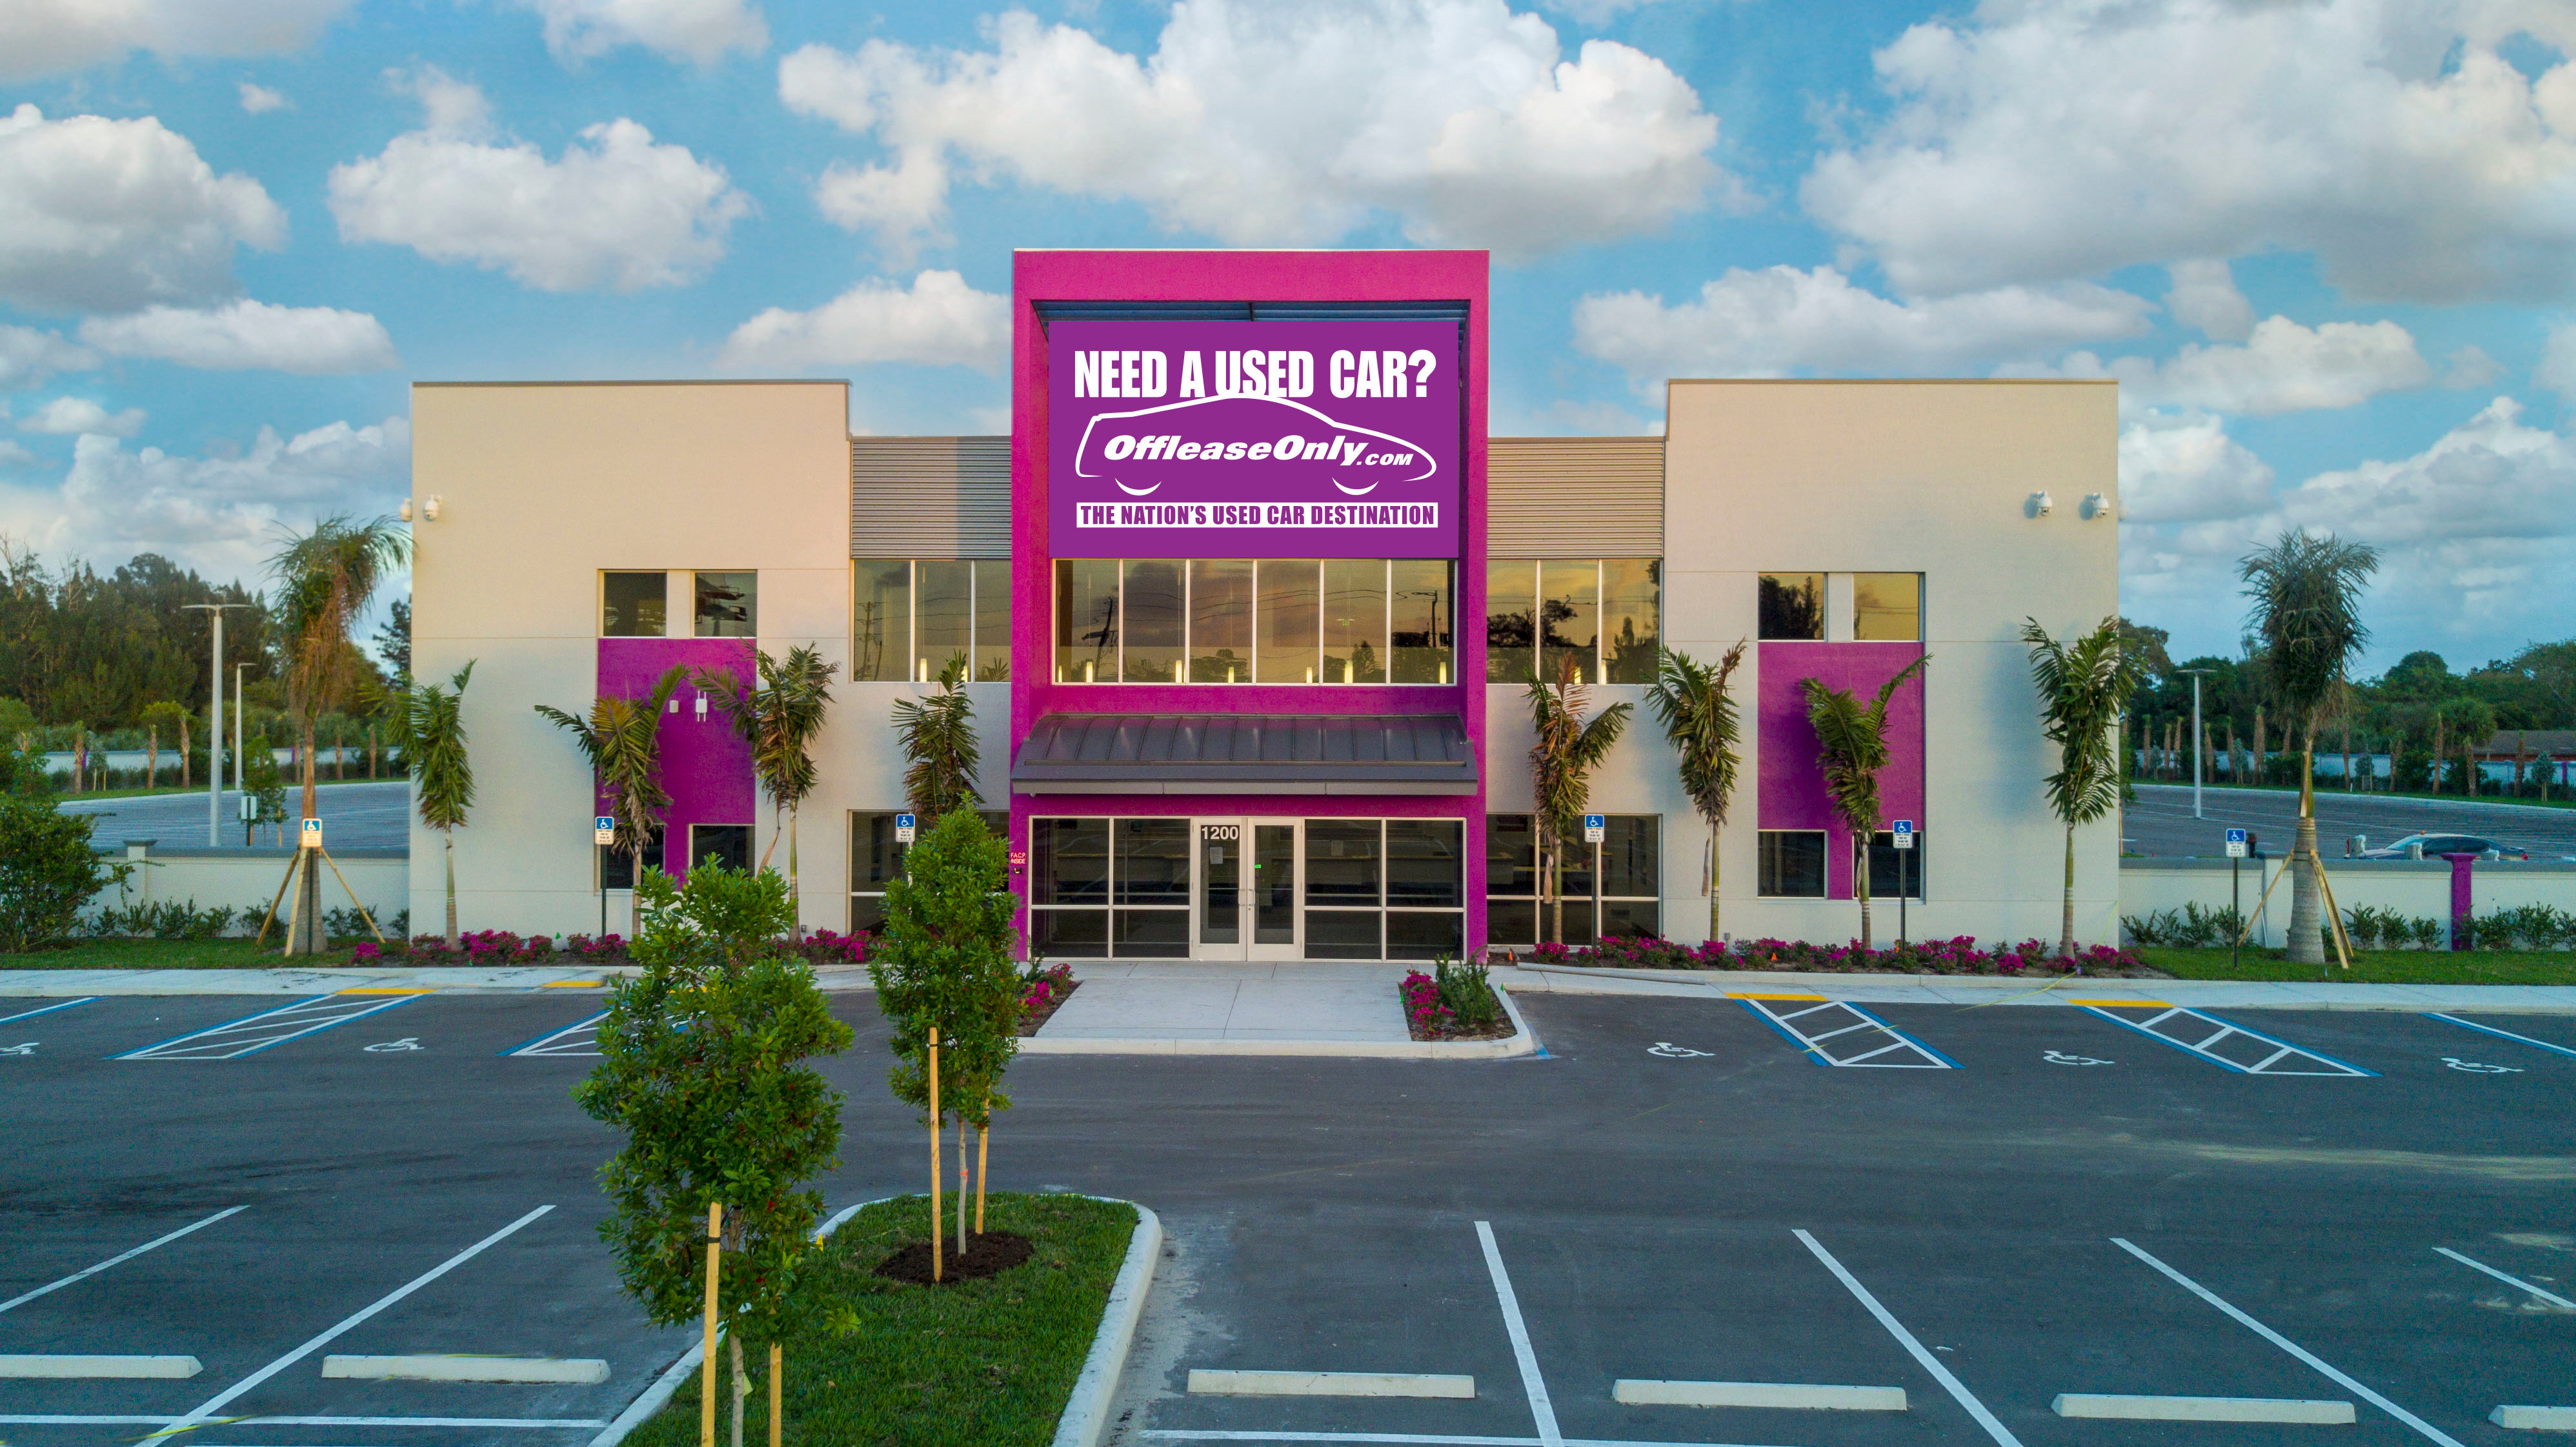 Off Lease Palm Beach >> Off Lease Only In West Palm Beach Florida 33406 561 222 2277